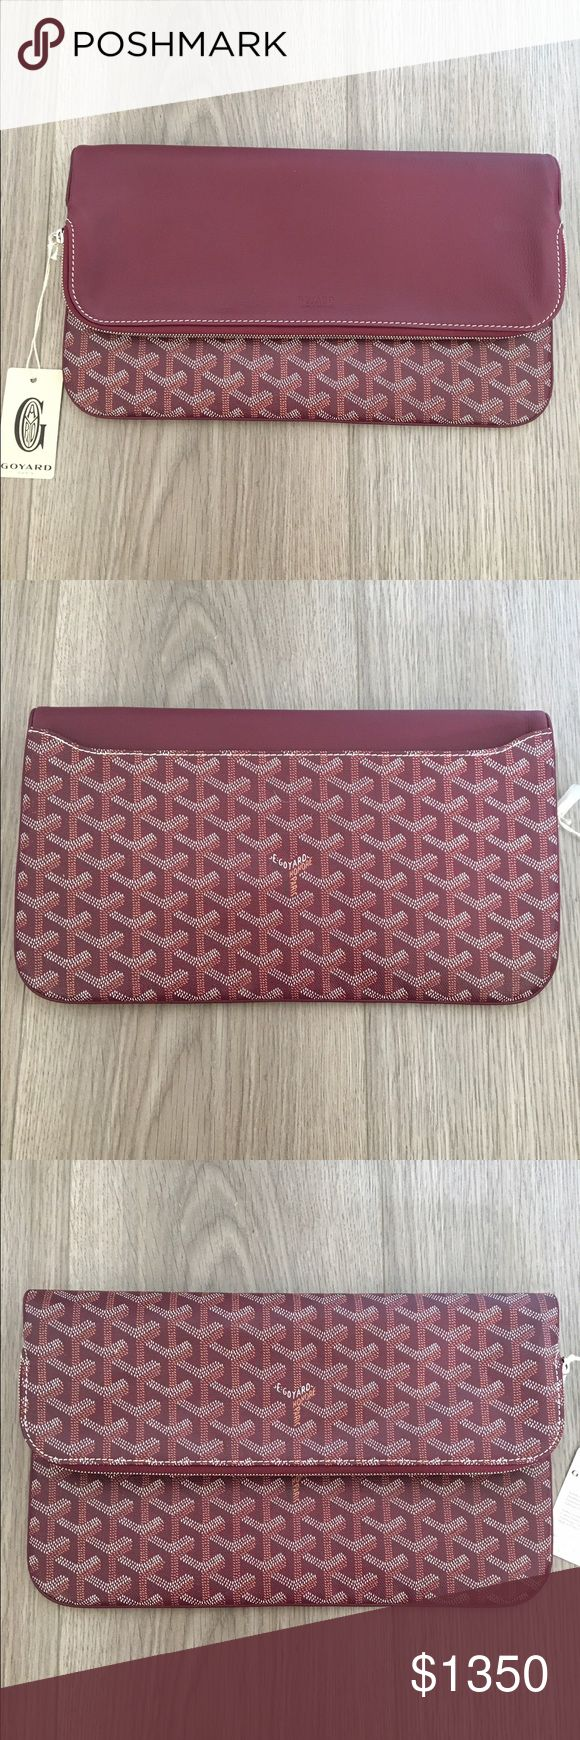 Goyard St. Marie Reversible Burgundy Clutch Goyard St. Marie burgundy clutch. New this season! Reversible flap that can be carried in two ways. Lots of space for all your necessities! Purchased at the Paris St. Honore location in October 2016. Never been used and comes with original tags, zipper cover, dust bag and box. Can provide more photos if needed. Thanks for your interest! :) Goyard Bags Clutches & Wristlets